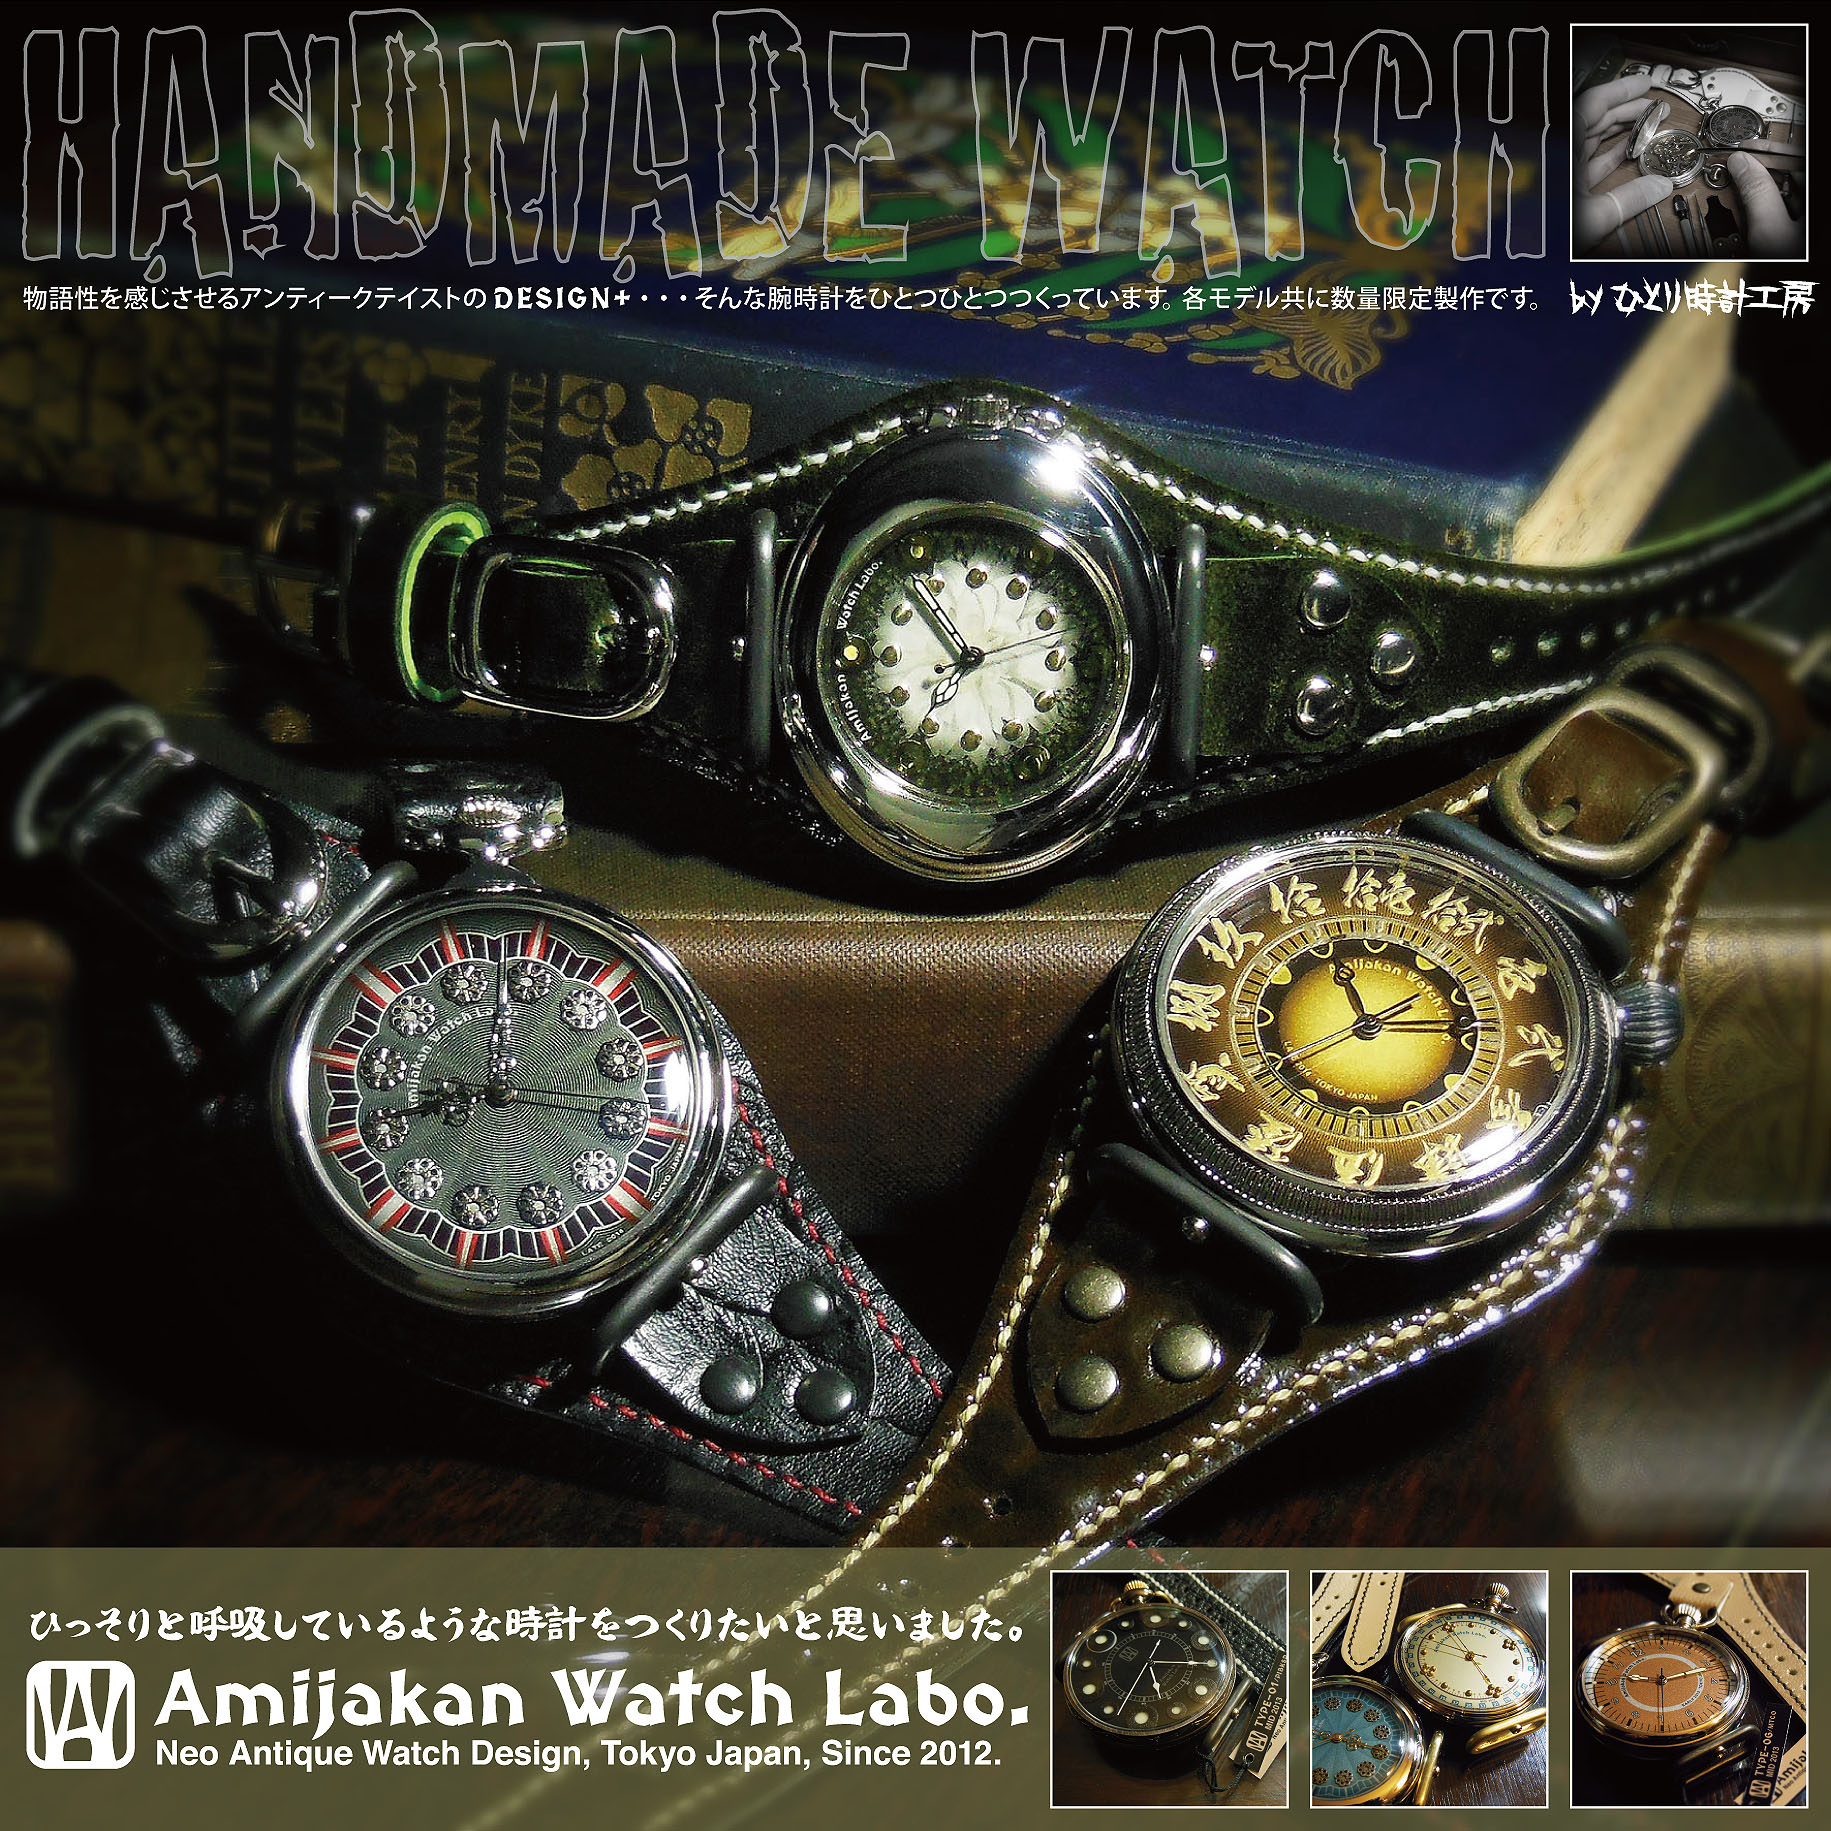 Amijakan Watch Labo.